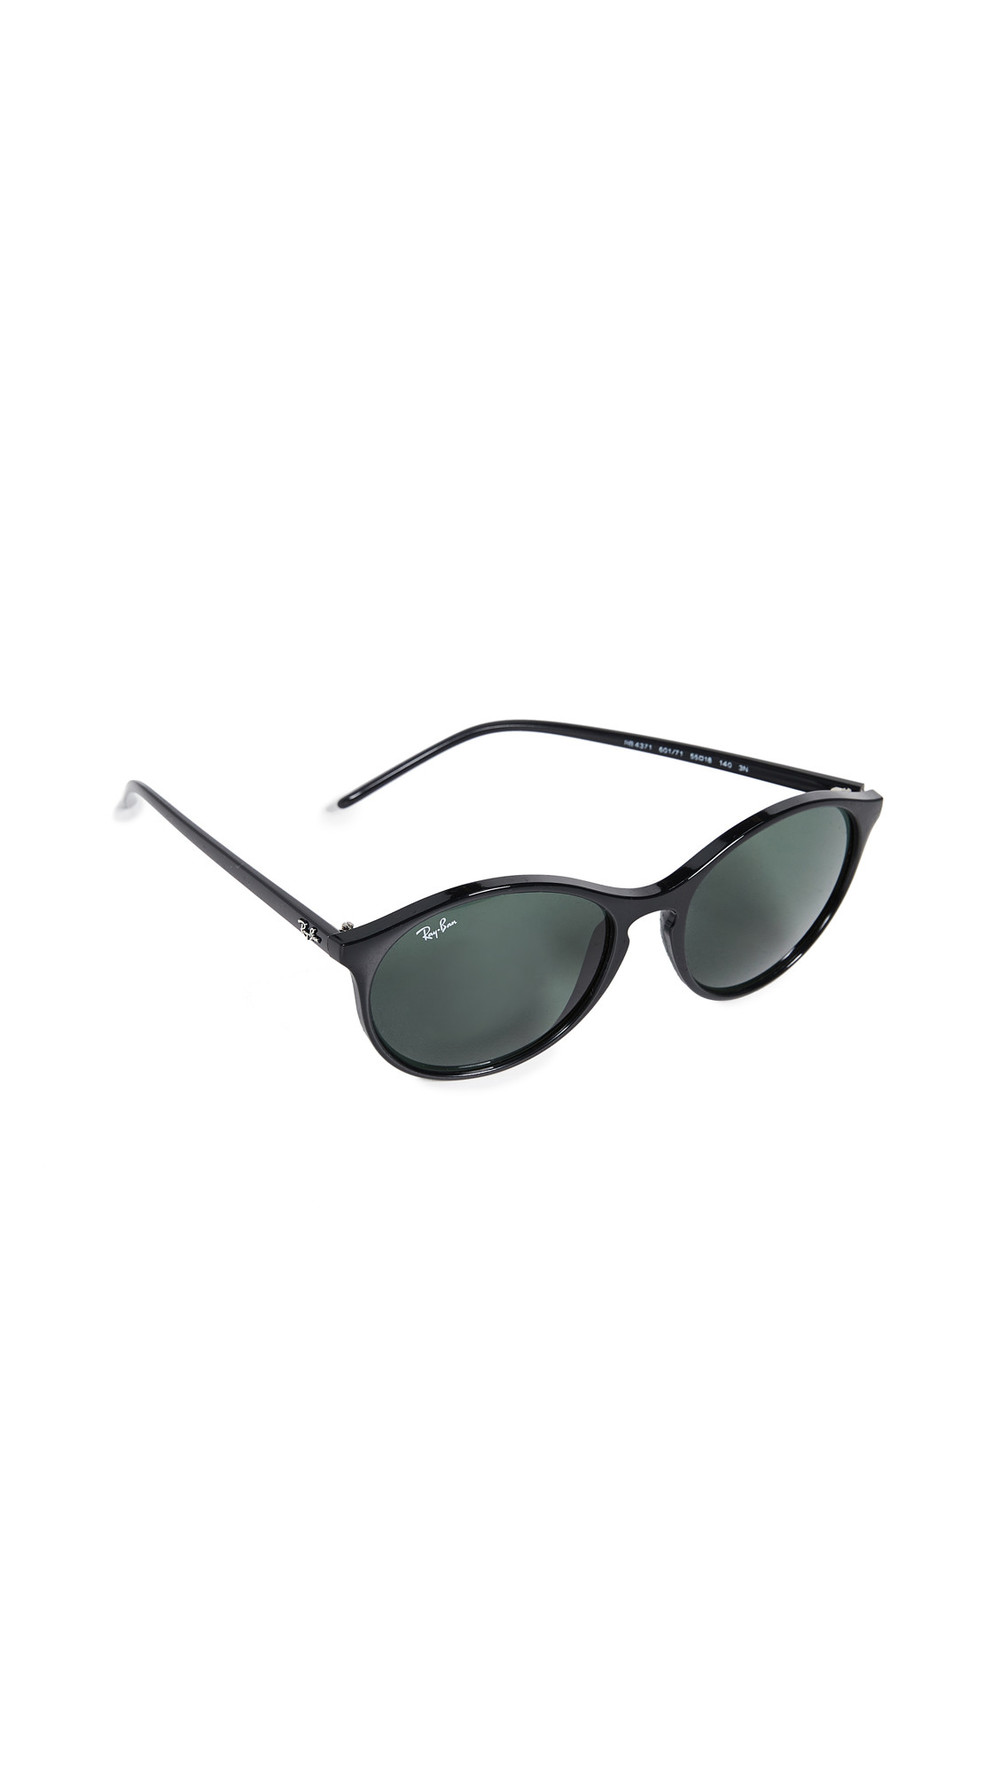 Ray-Ban Oversized Round Sunglasses in black